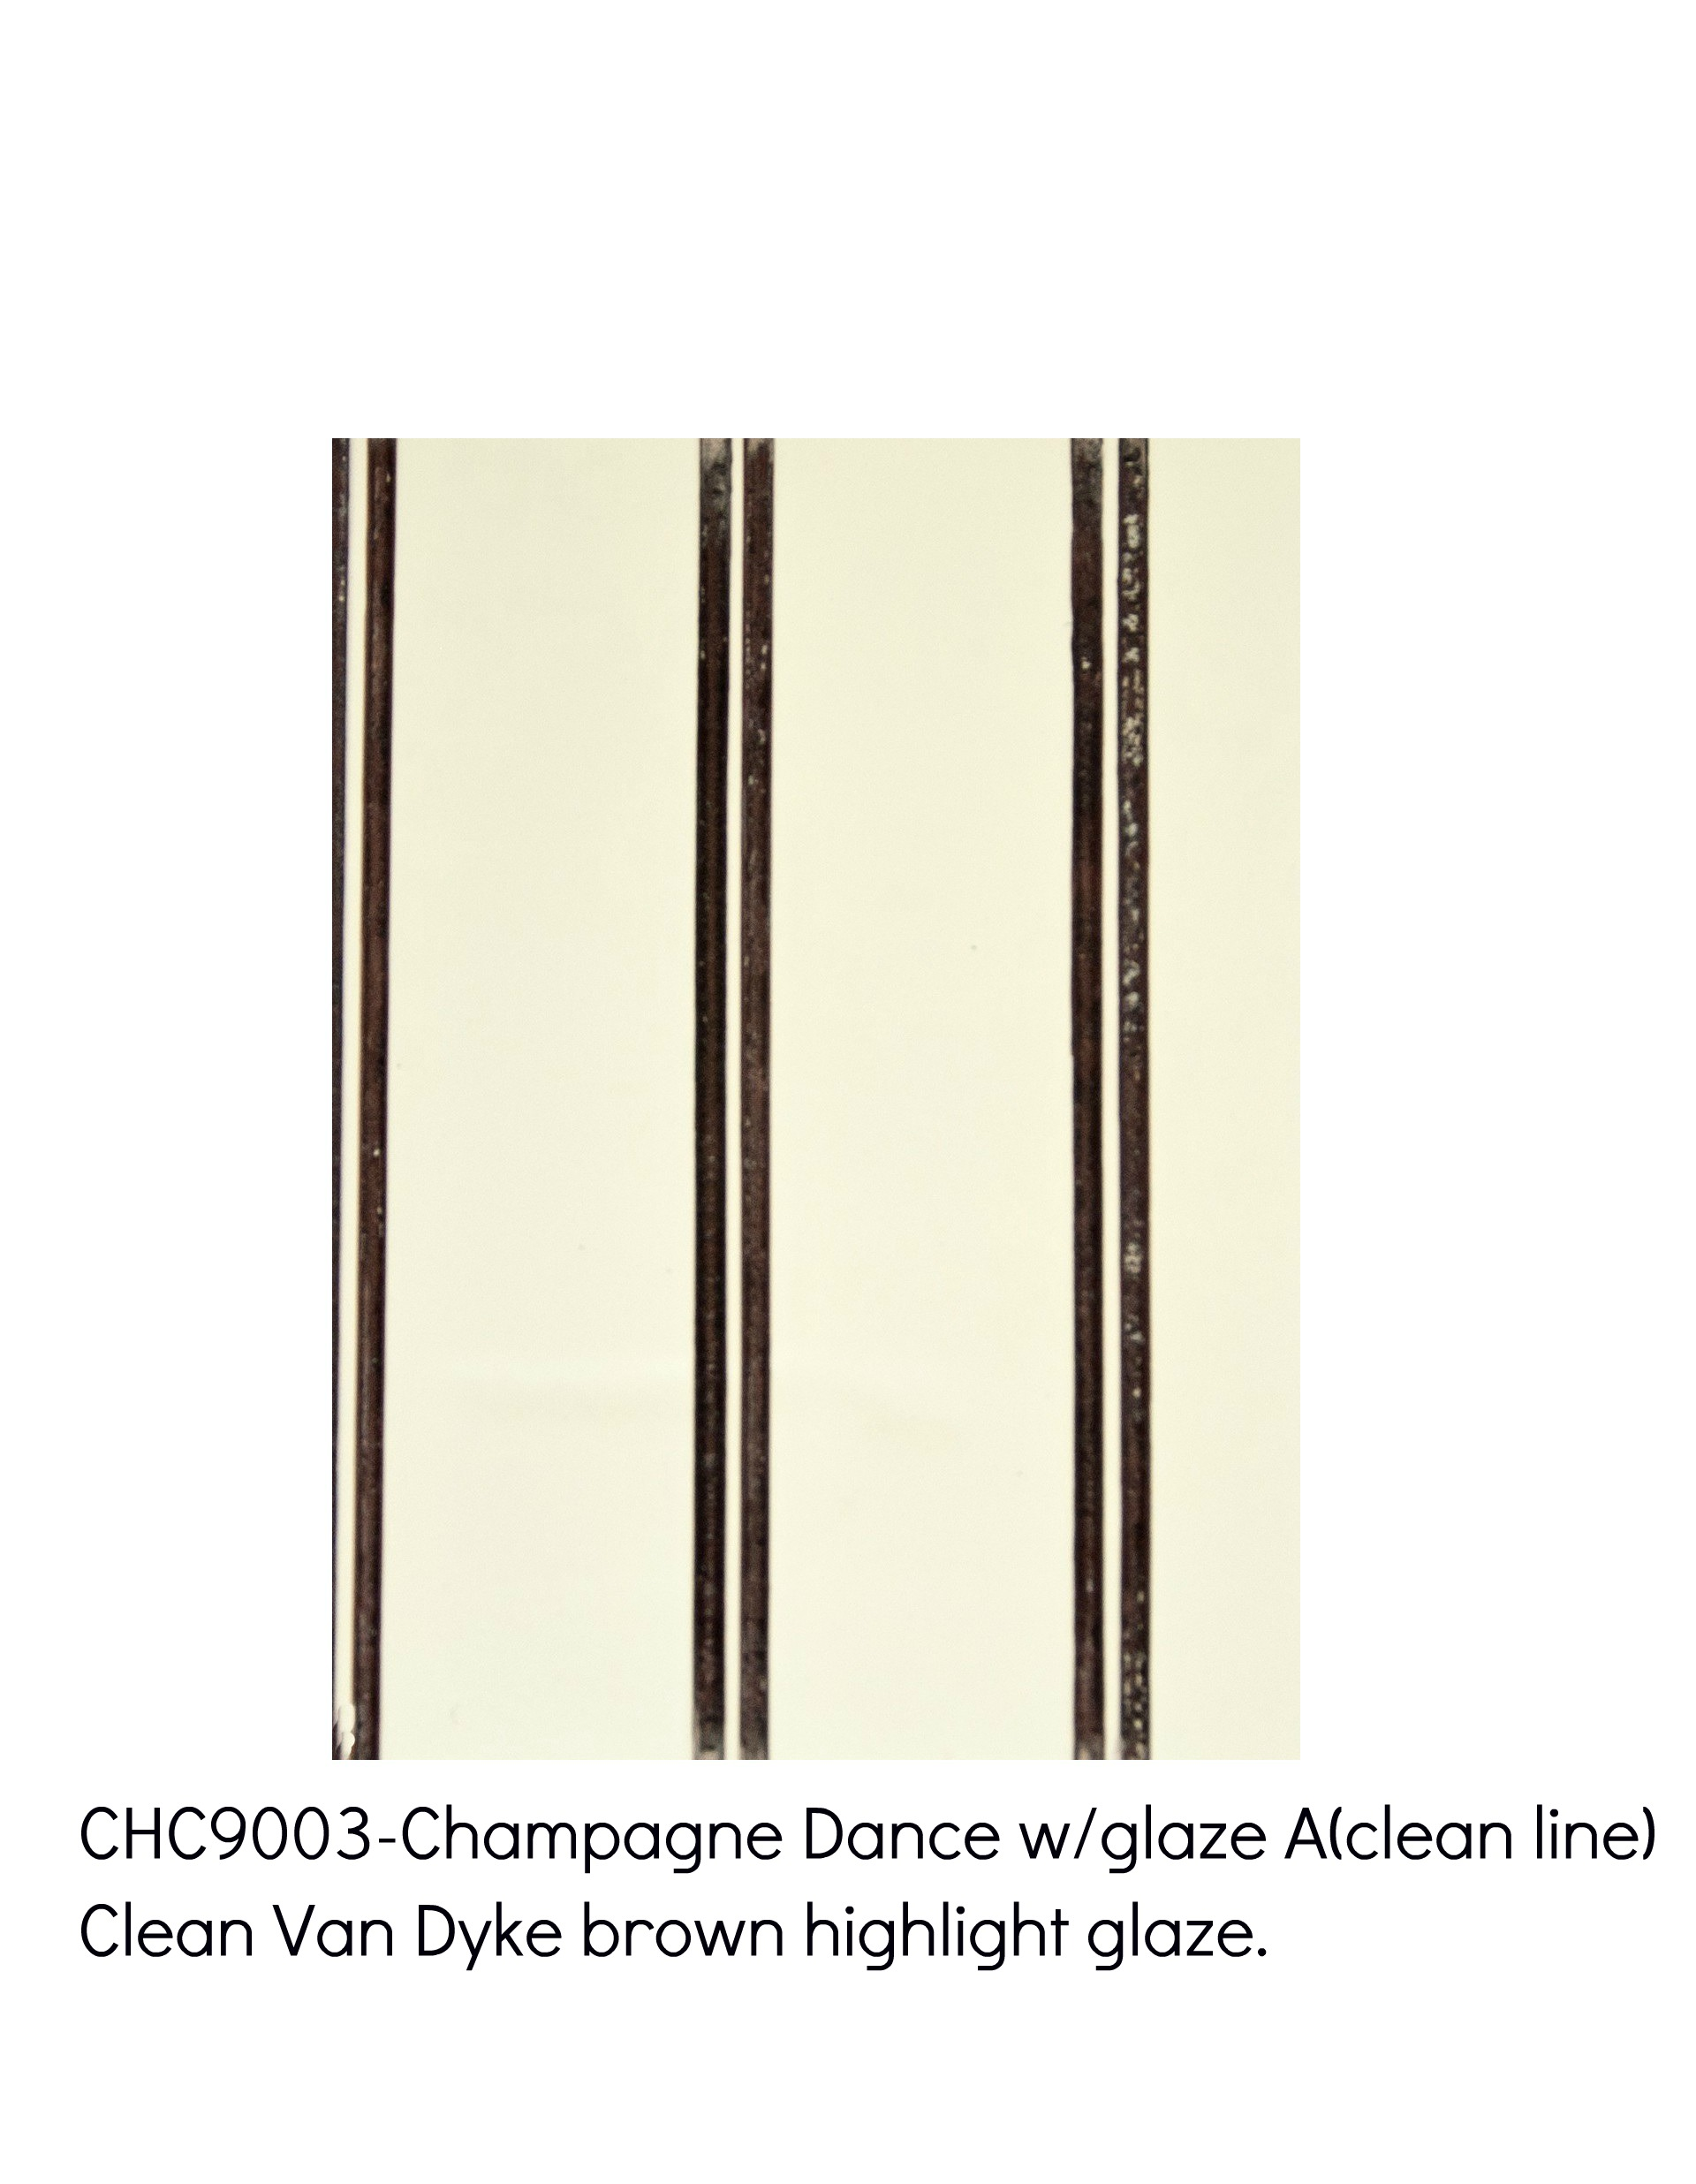 Champagne Dance 9003-Clean Van Dyke Brown highlight glaze